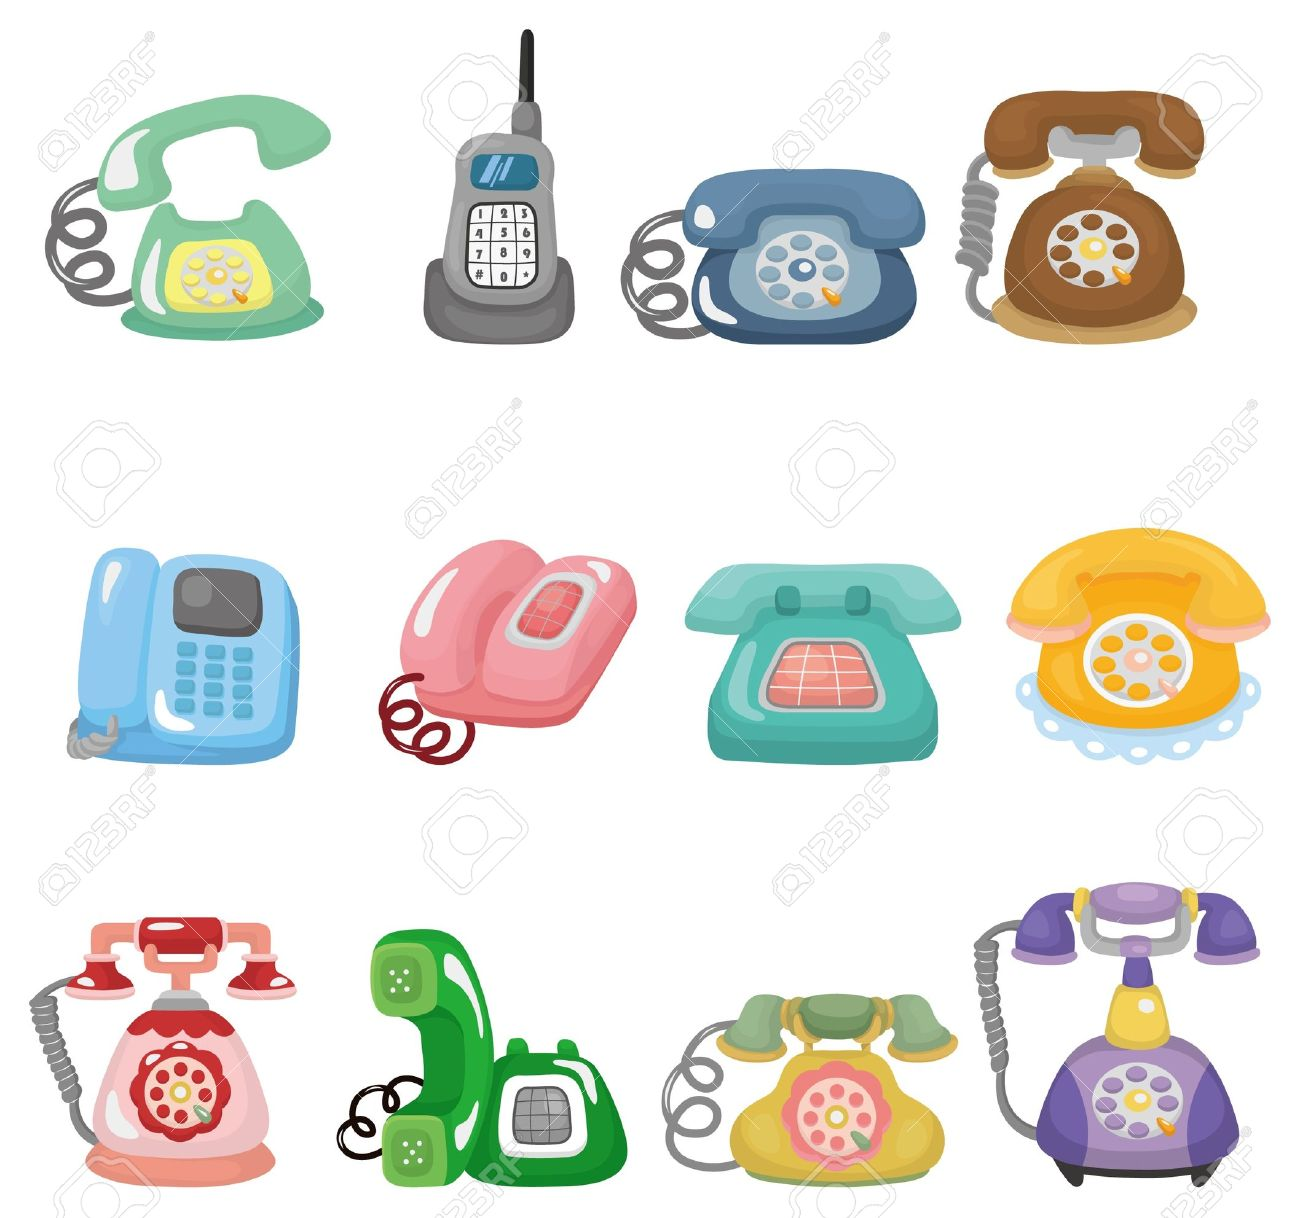 Clipart Of Cute Old Fashion Phones.